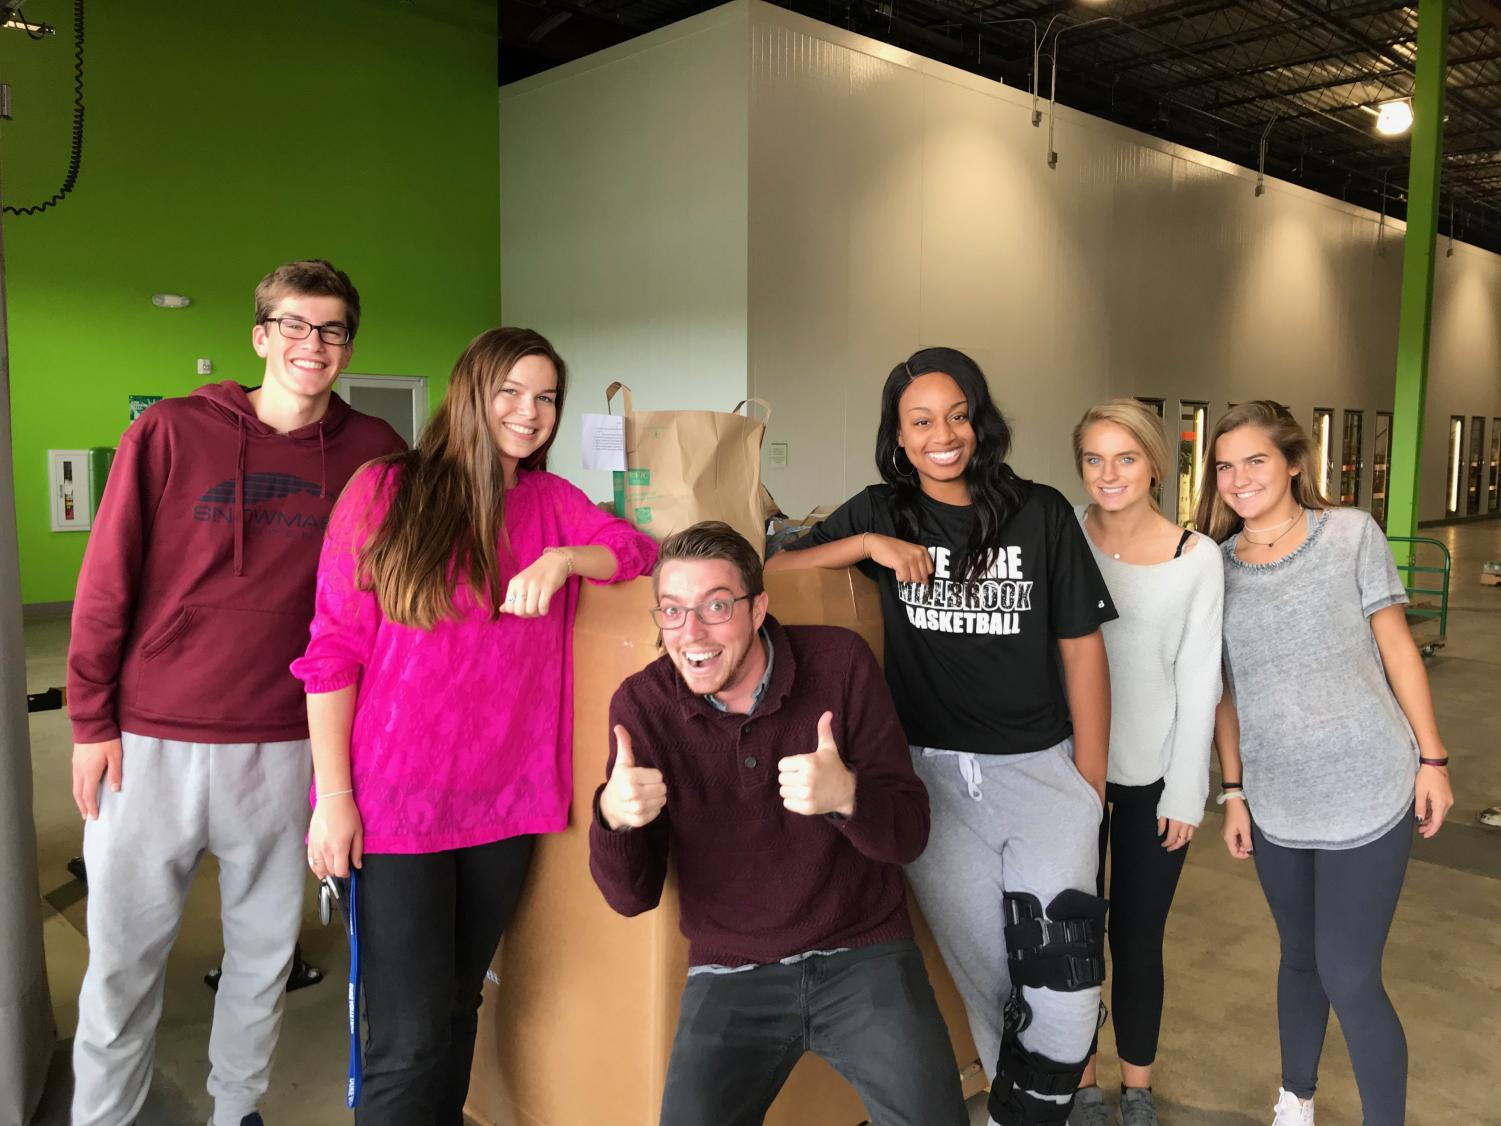 Helping those in need, newly elected Student Body President, Ryan Rebne, along with other members from Millbrook's Executive Board helped bring food and money to the North Carolina Food Bank. This student led food drive aided in providing over 9,000 meals for people in 34 different counties.